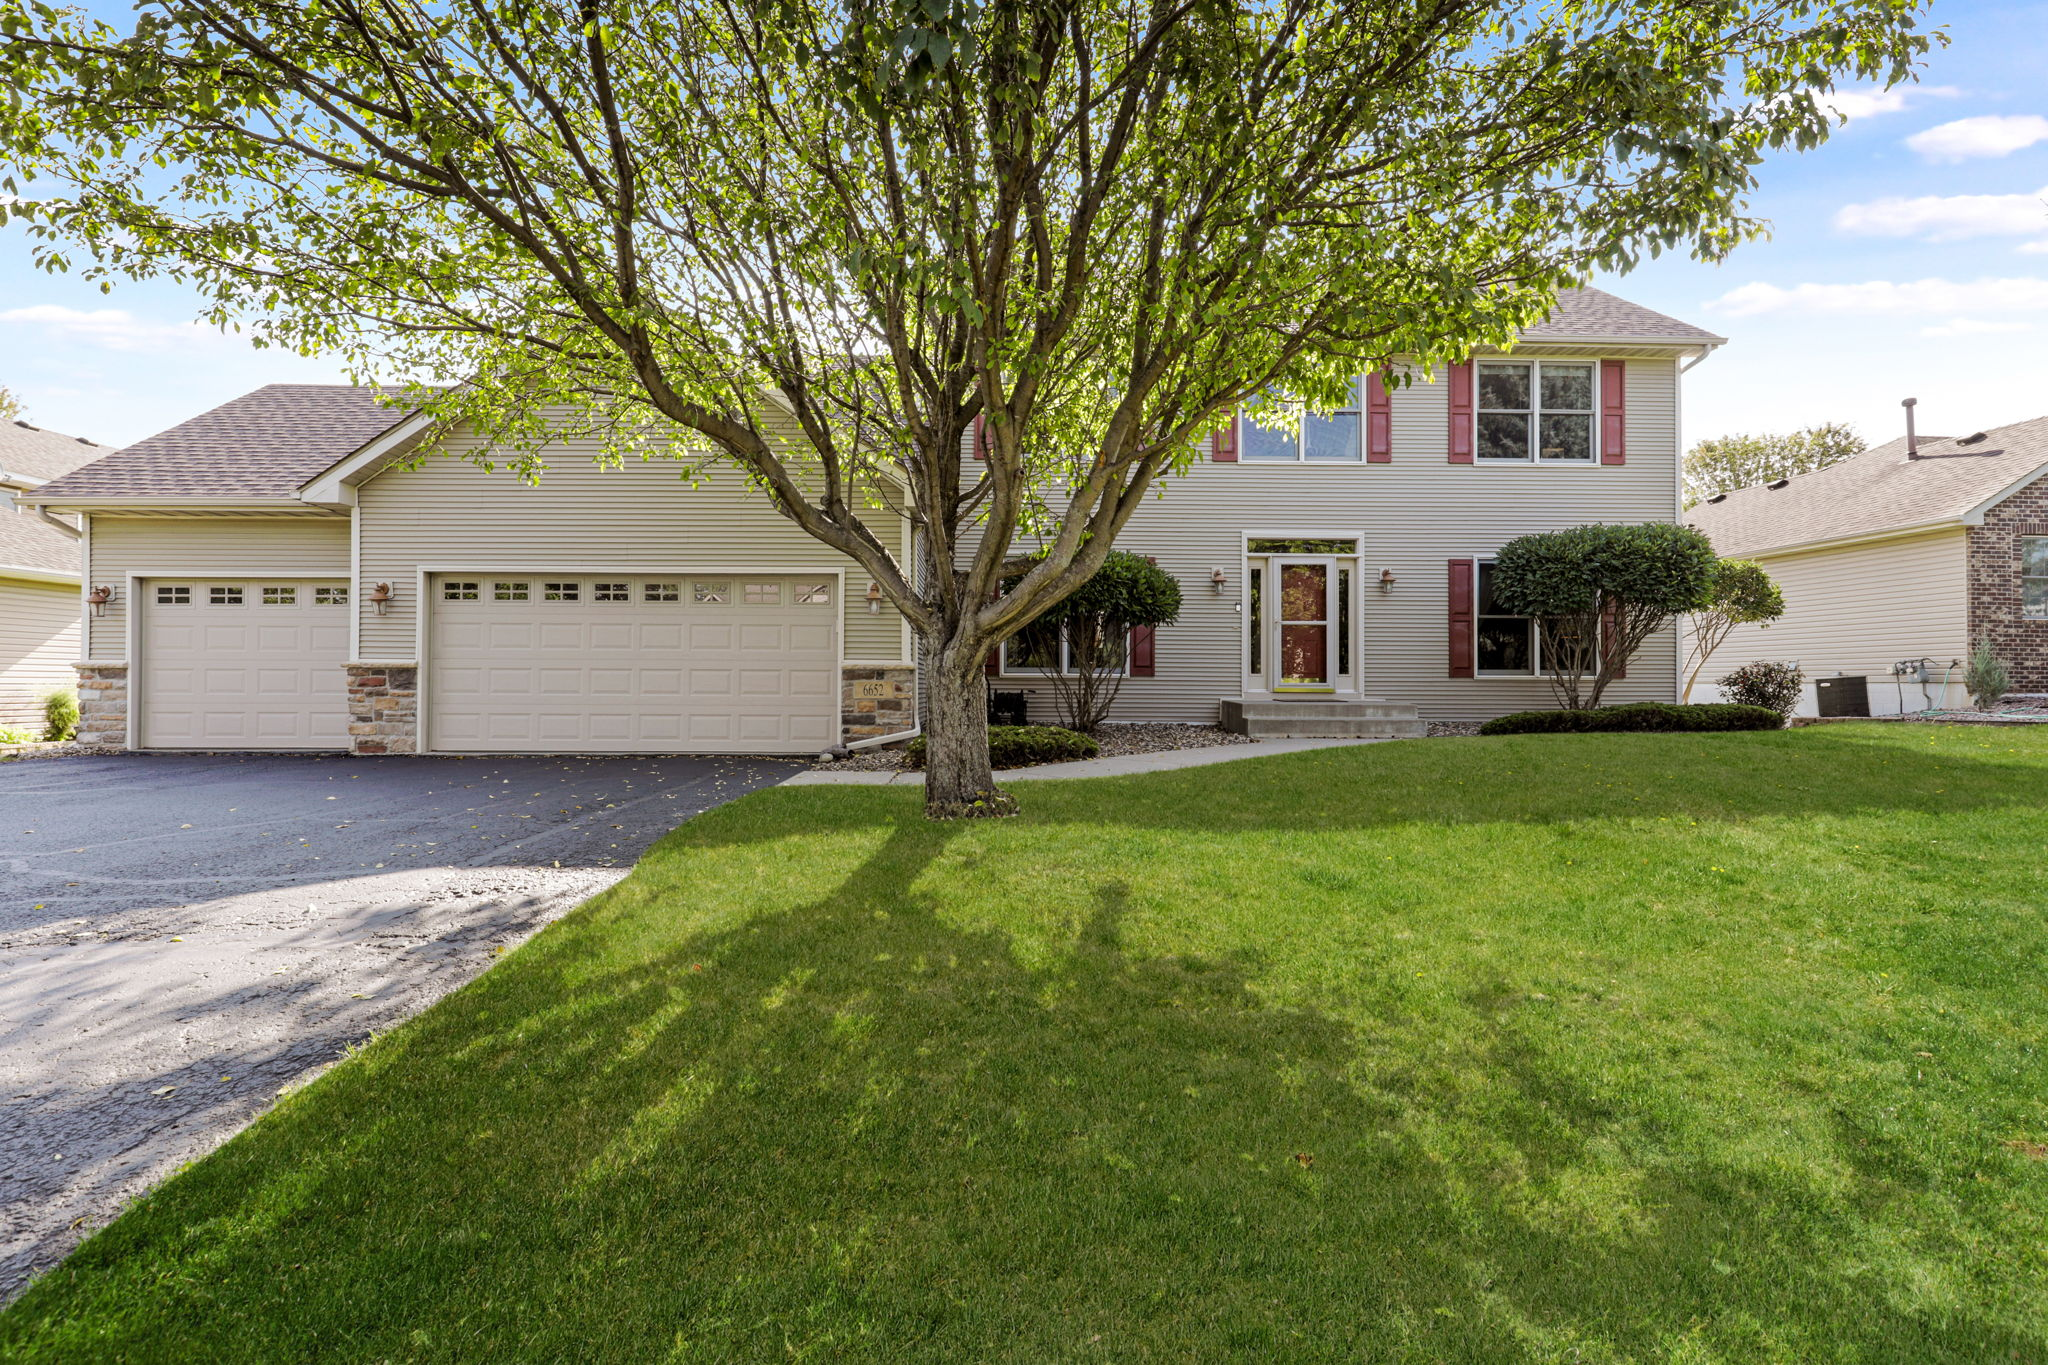 6652 Clearwater Creek Dr, Lino Lakes, MN 55038, USA Photo 44